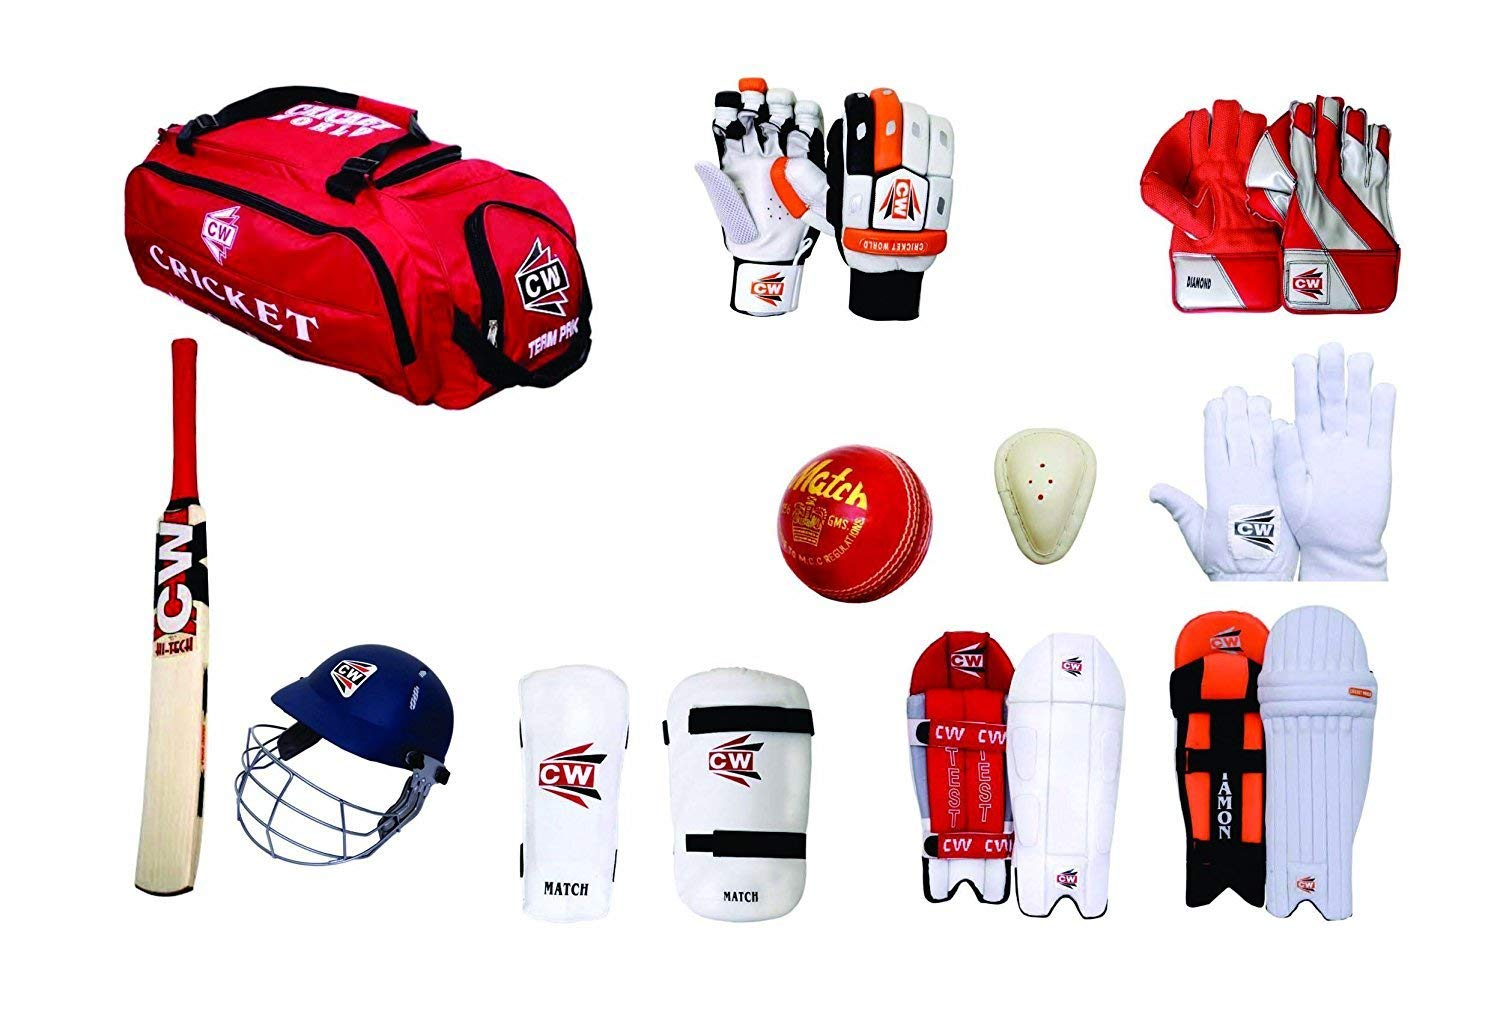 C&W Cricket World Hi Tech Match Team Kashmir Willow Red 12 Item Full Senior Size Complete All Cricket Tools Batting And Keeping Accessories Set For Senior/Adult Tournament/College/School/Club Matches